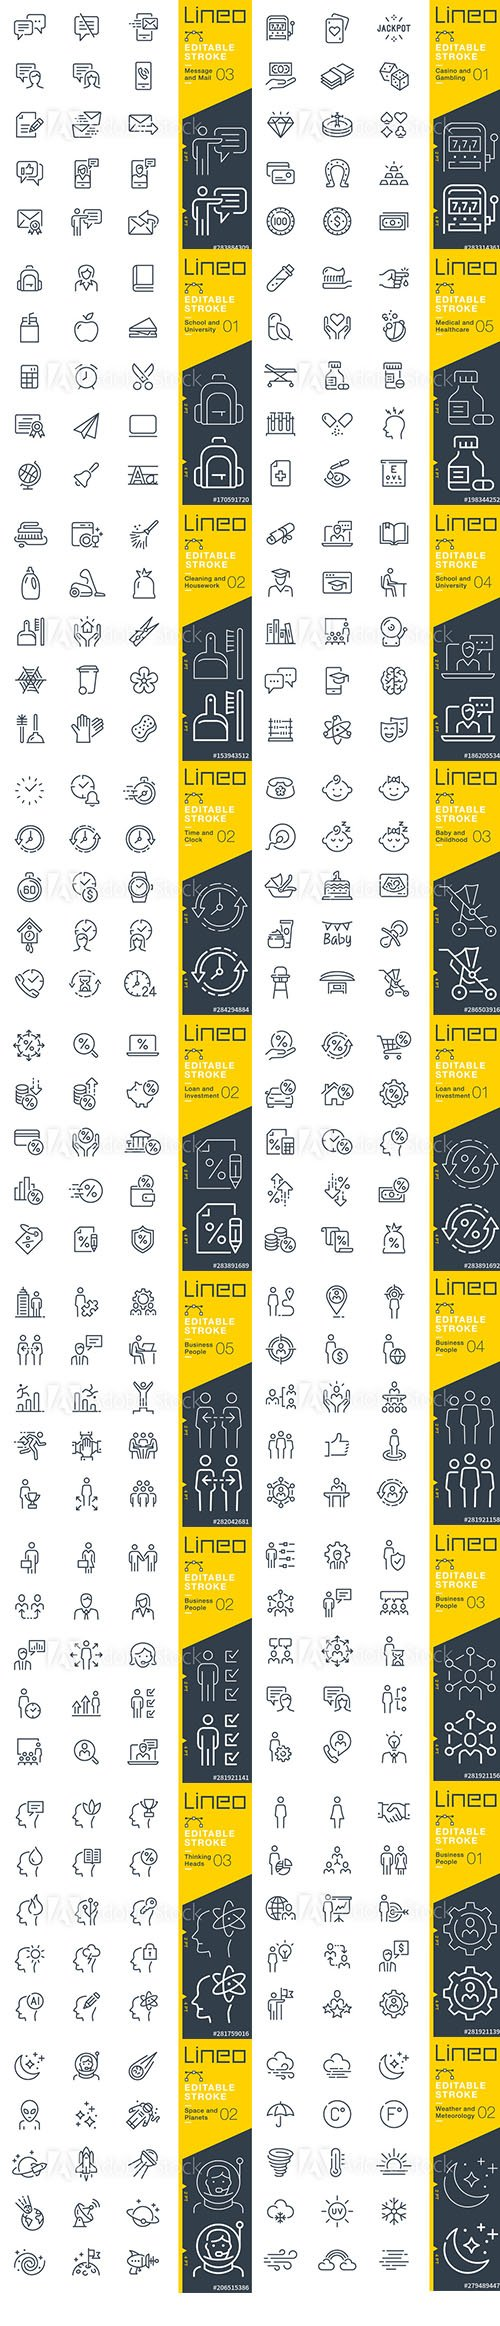 Outline Icons Pack Lineo Vol7